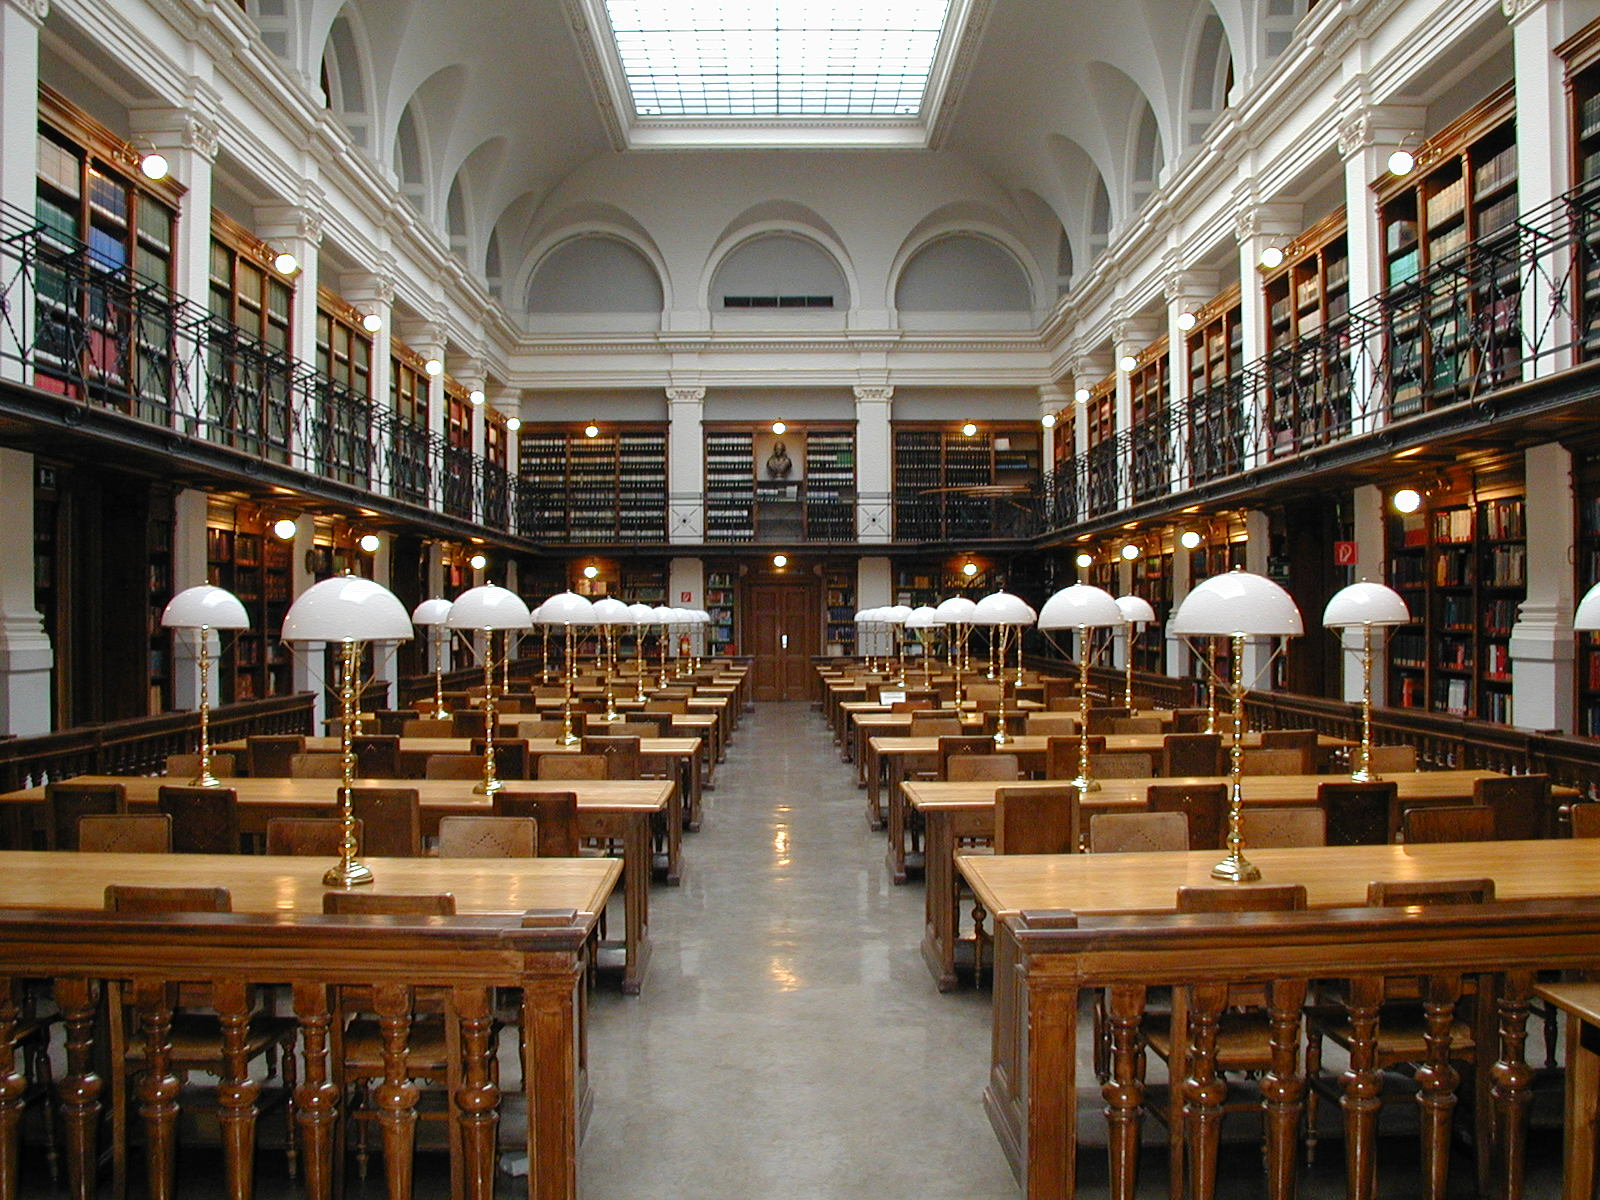 File Graz University Library Reading Room Jpg Wikipedia